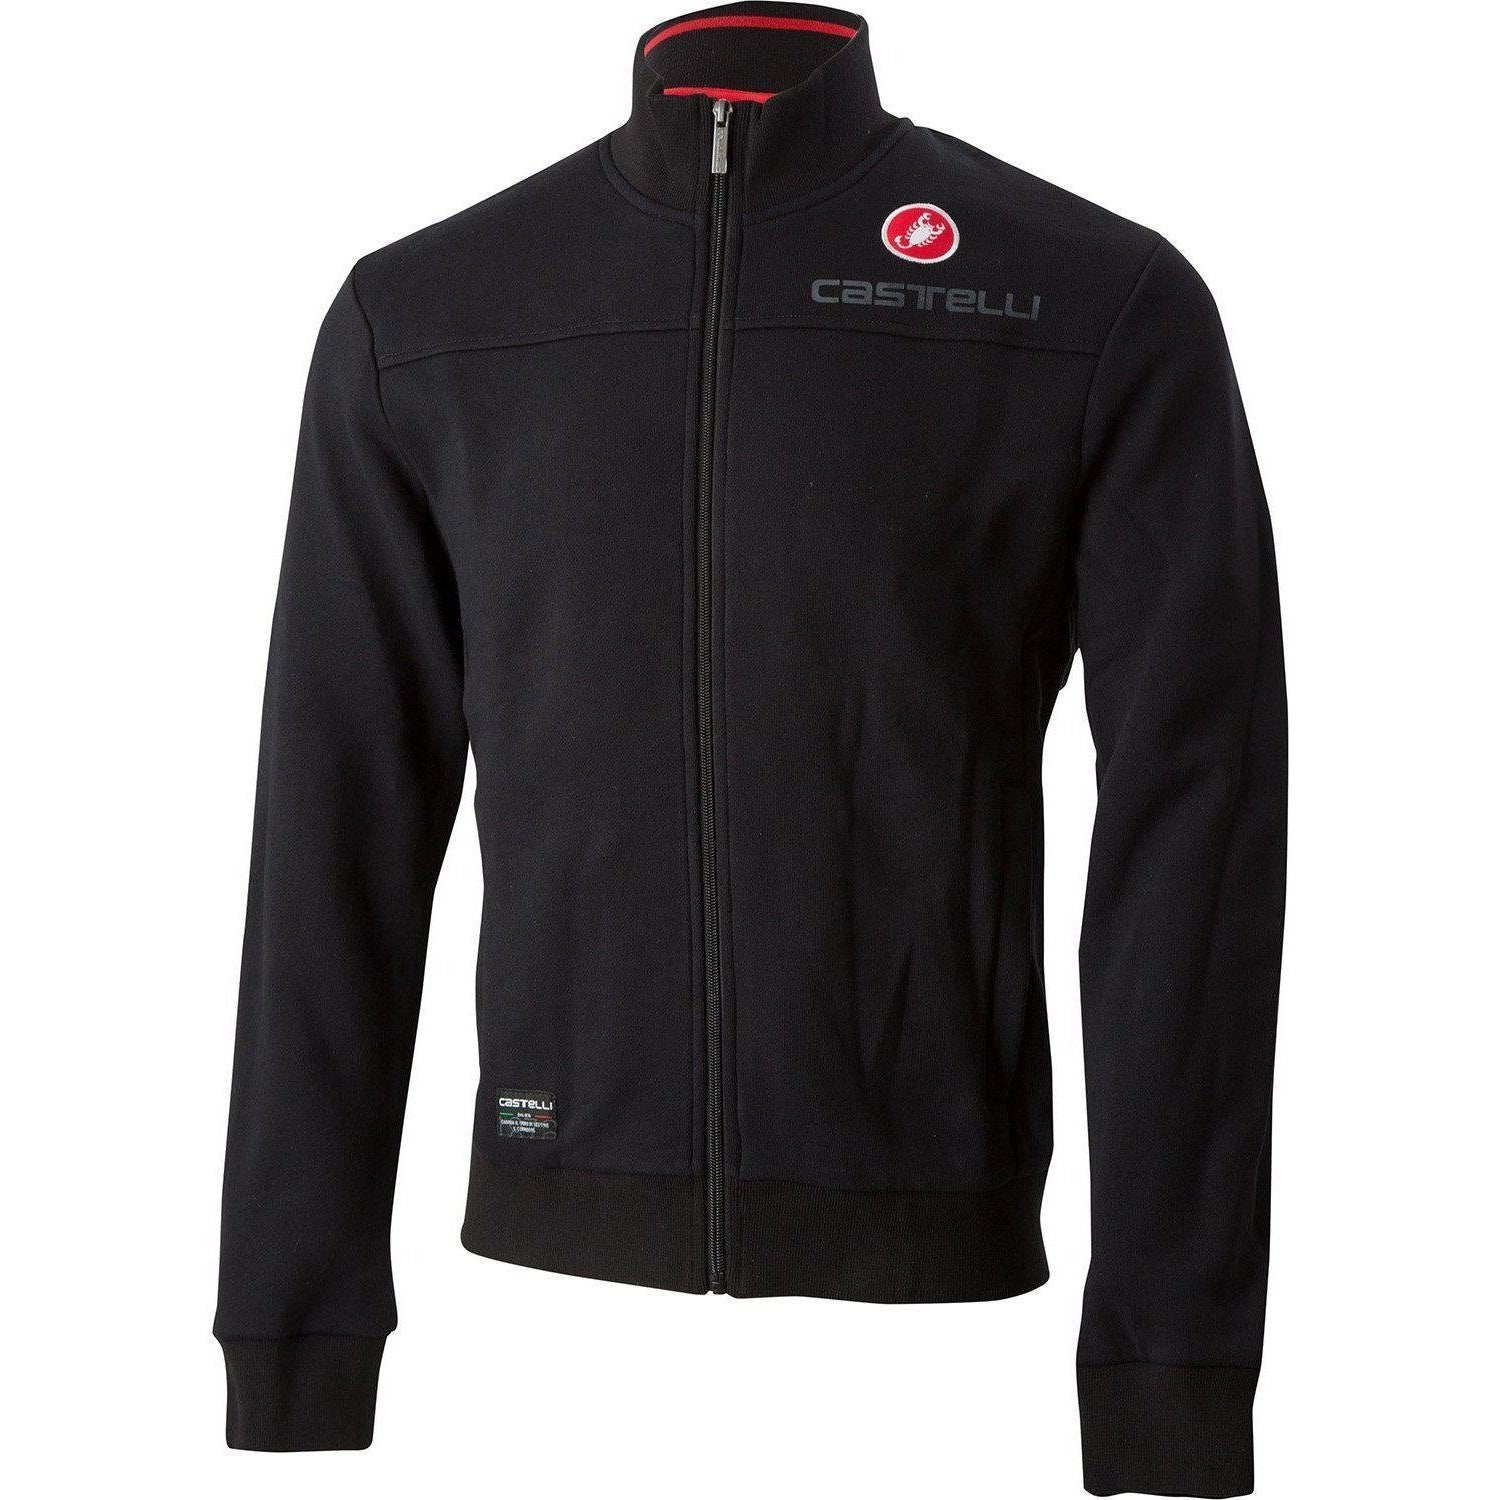 Castelli-Castelli Milano Track Jacket-Black-XS-CS185580101-saddleback-elite-performance-cycling